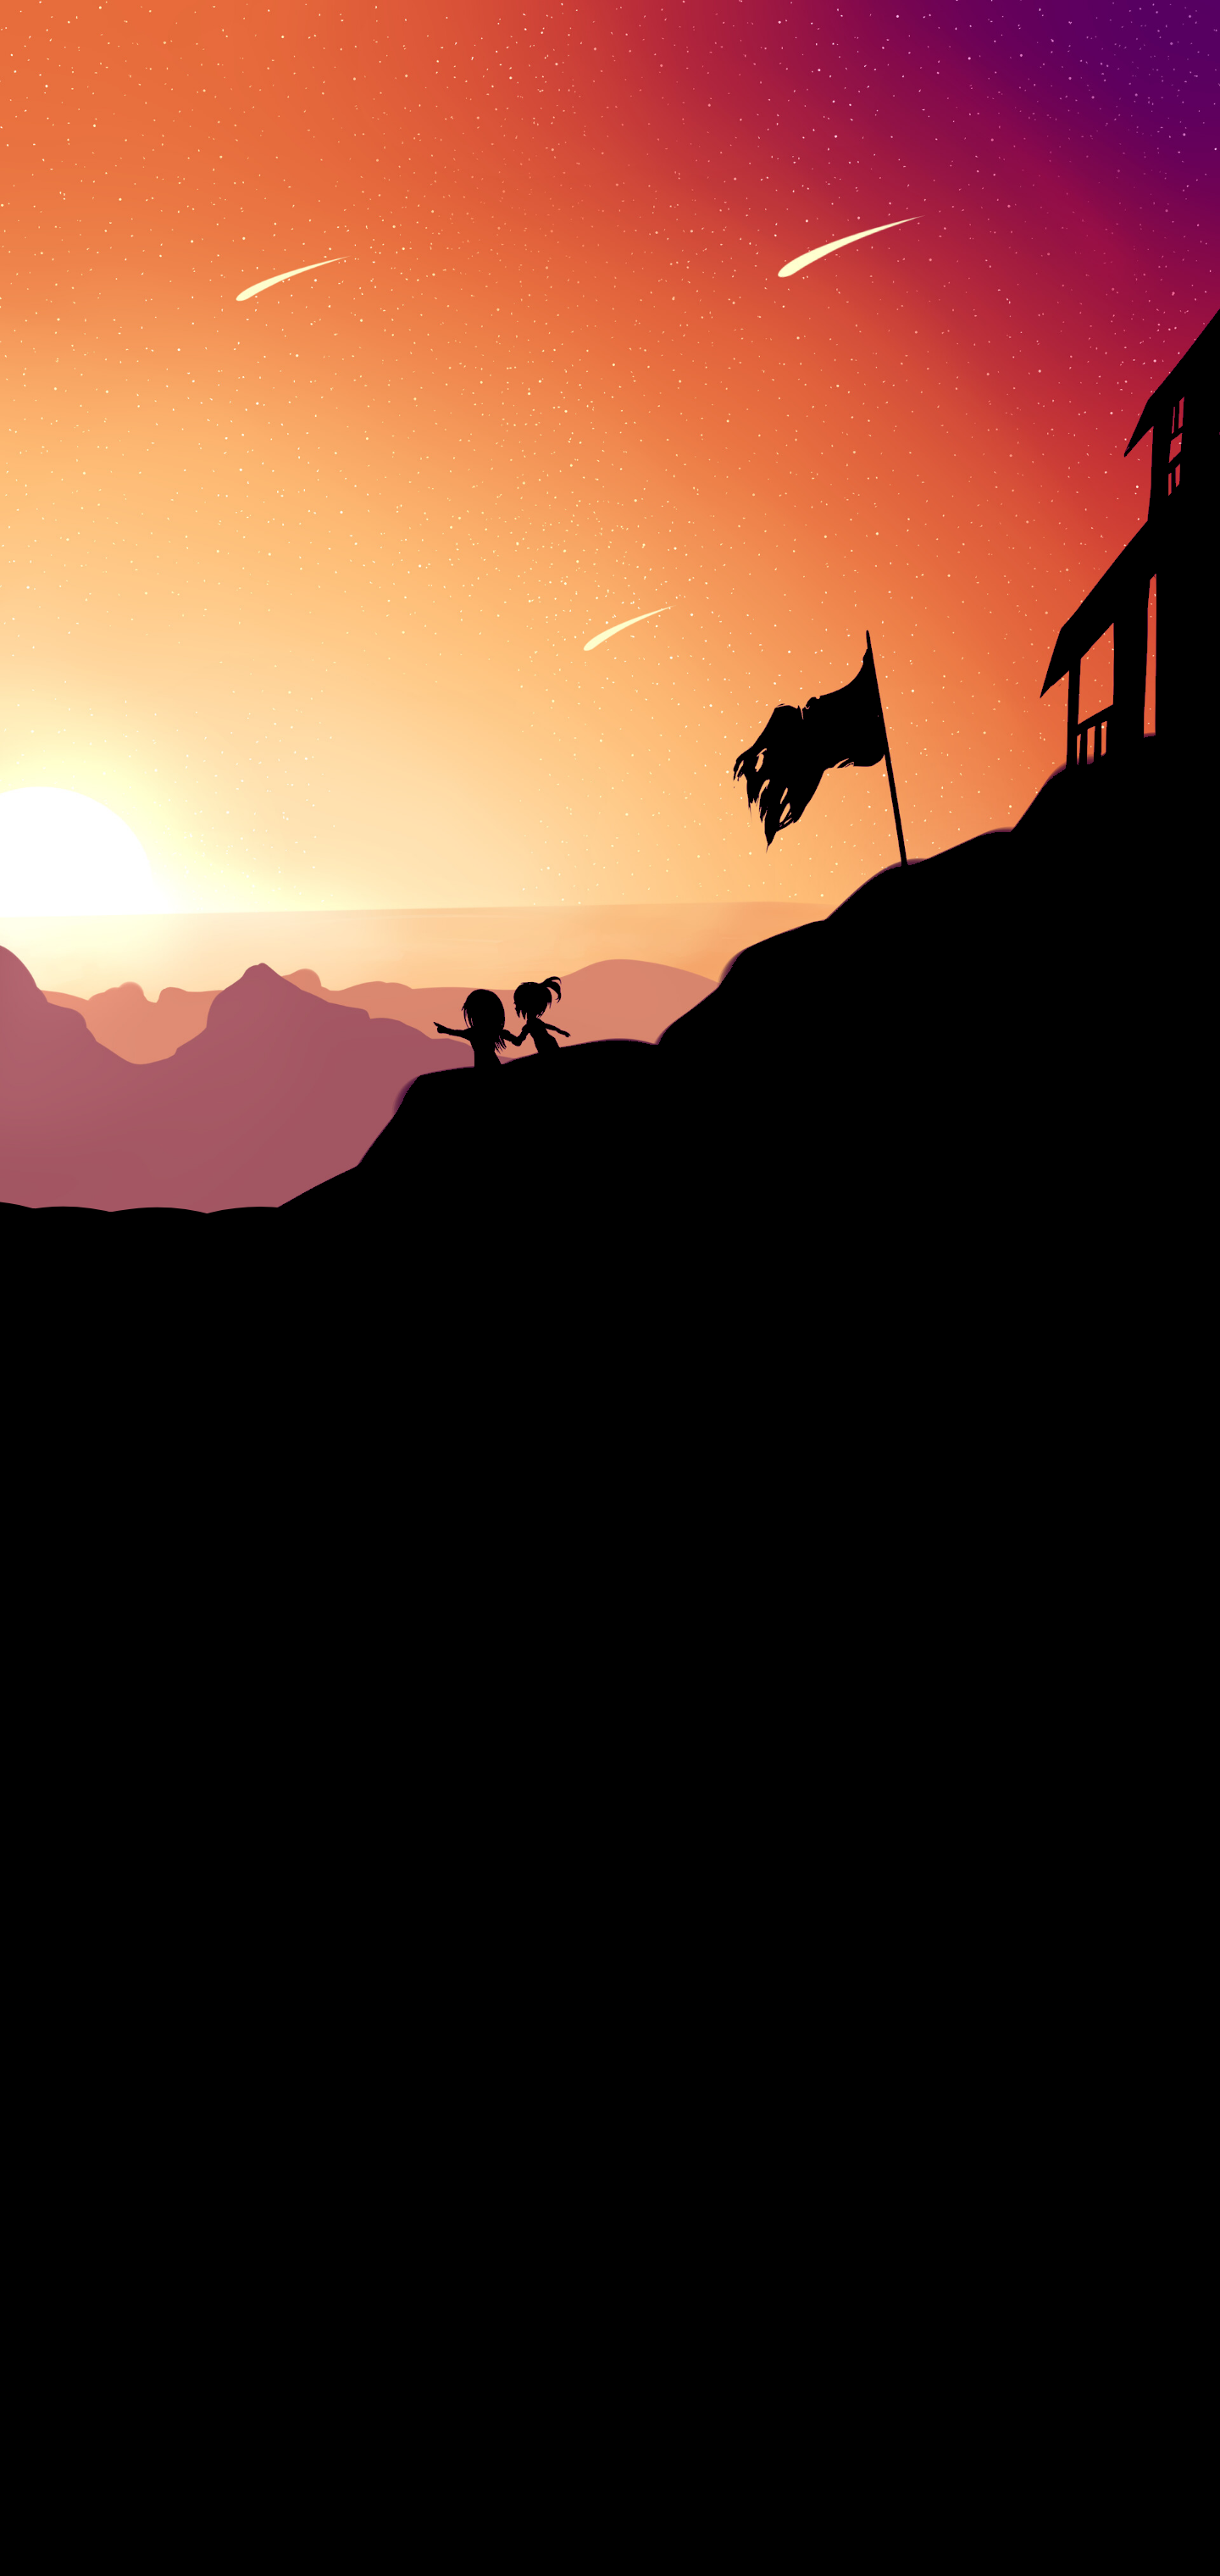 OLED wallpaper idownloadblog child mountain top